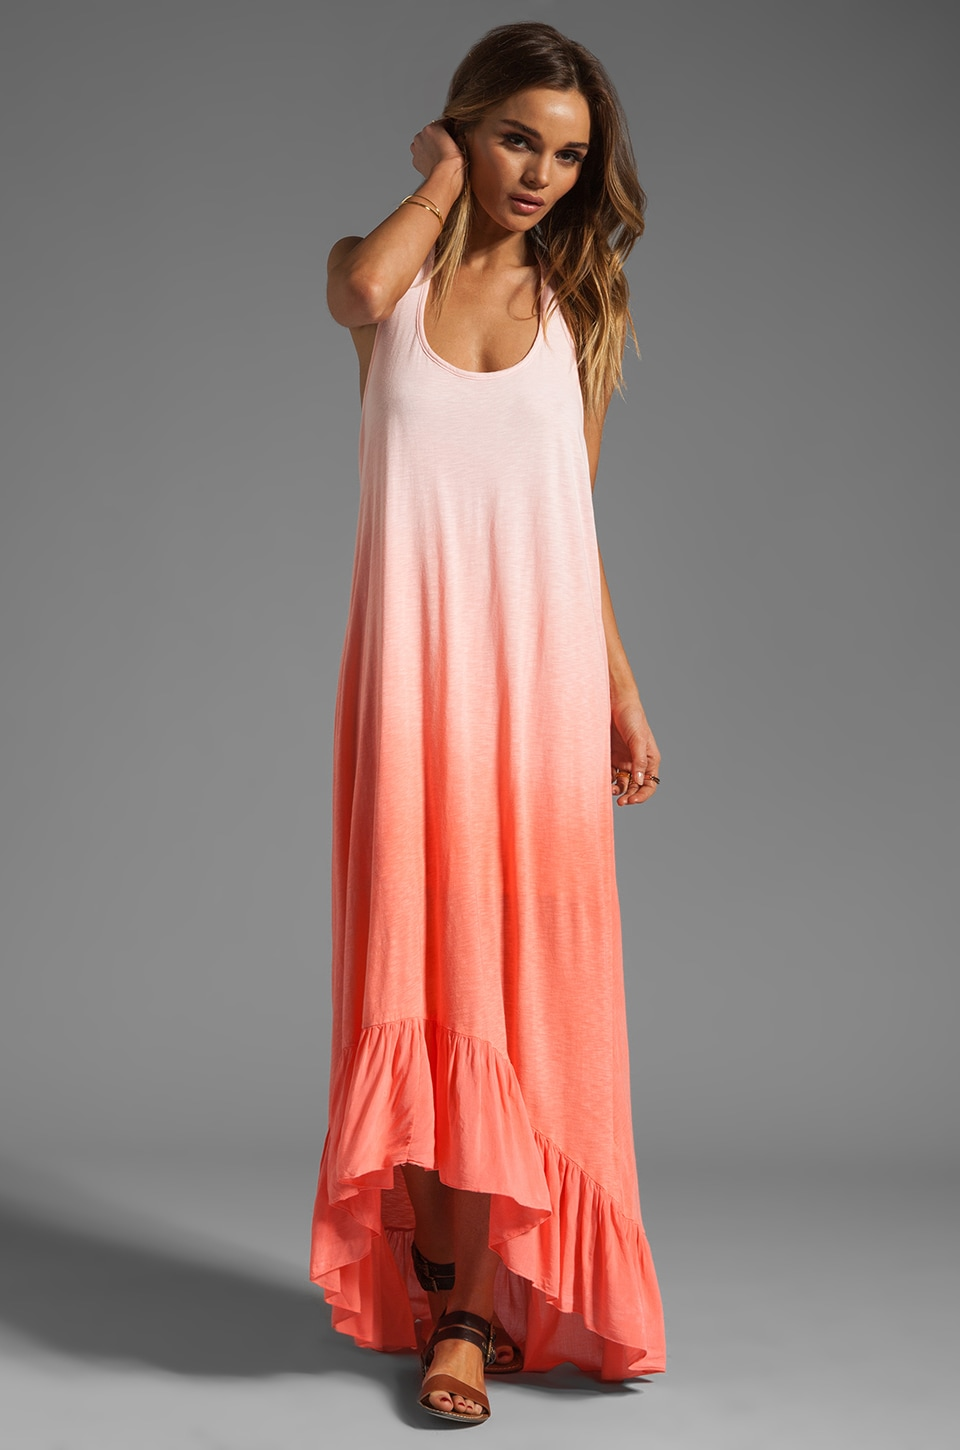 WOODLEIGH Millie Dress in Salmon